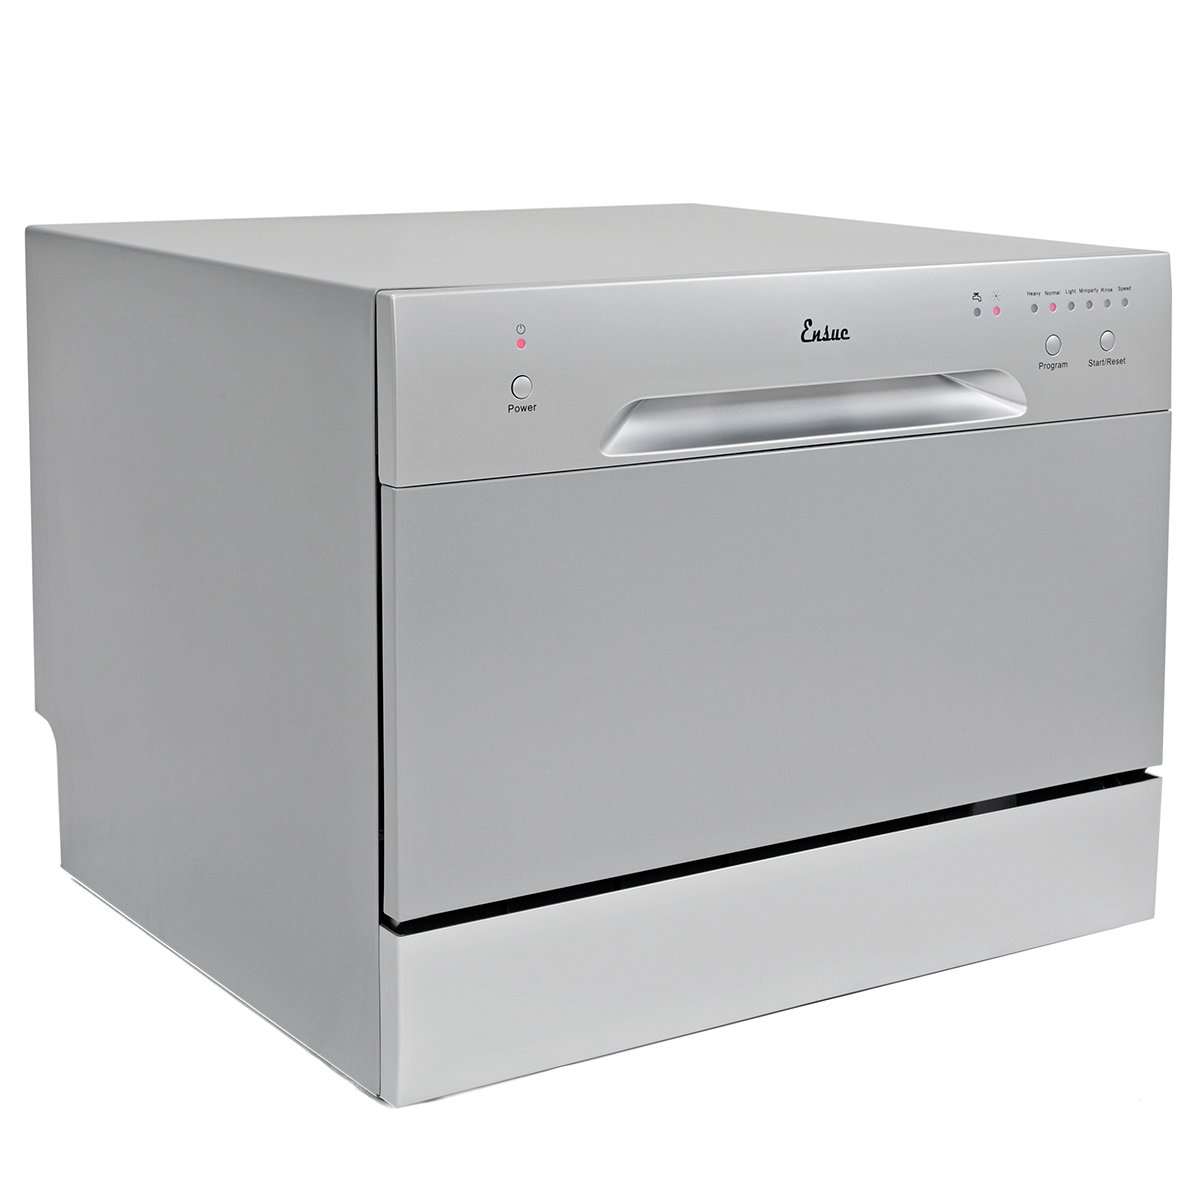 Best Rated In Dishwashers & Helpful Customer Reviews